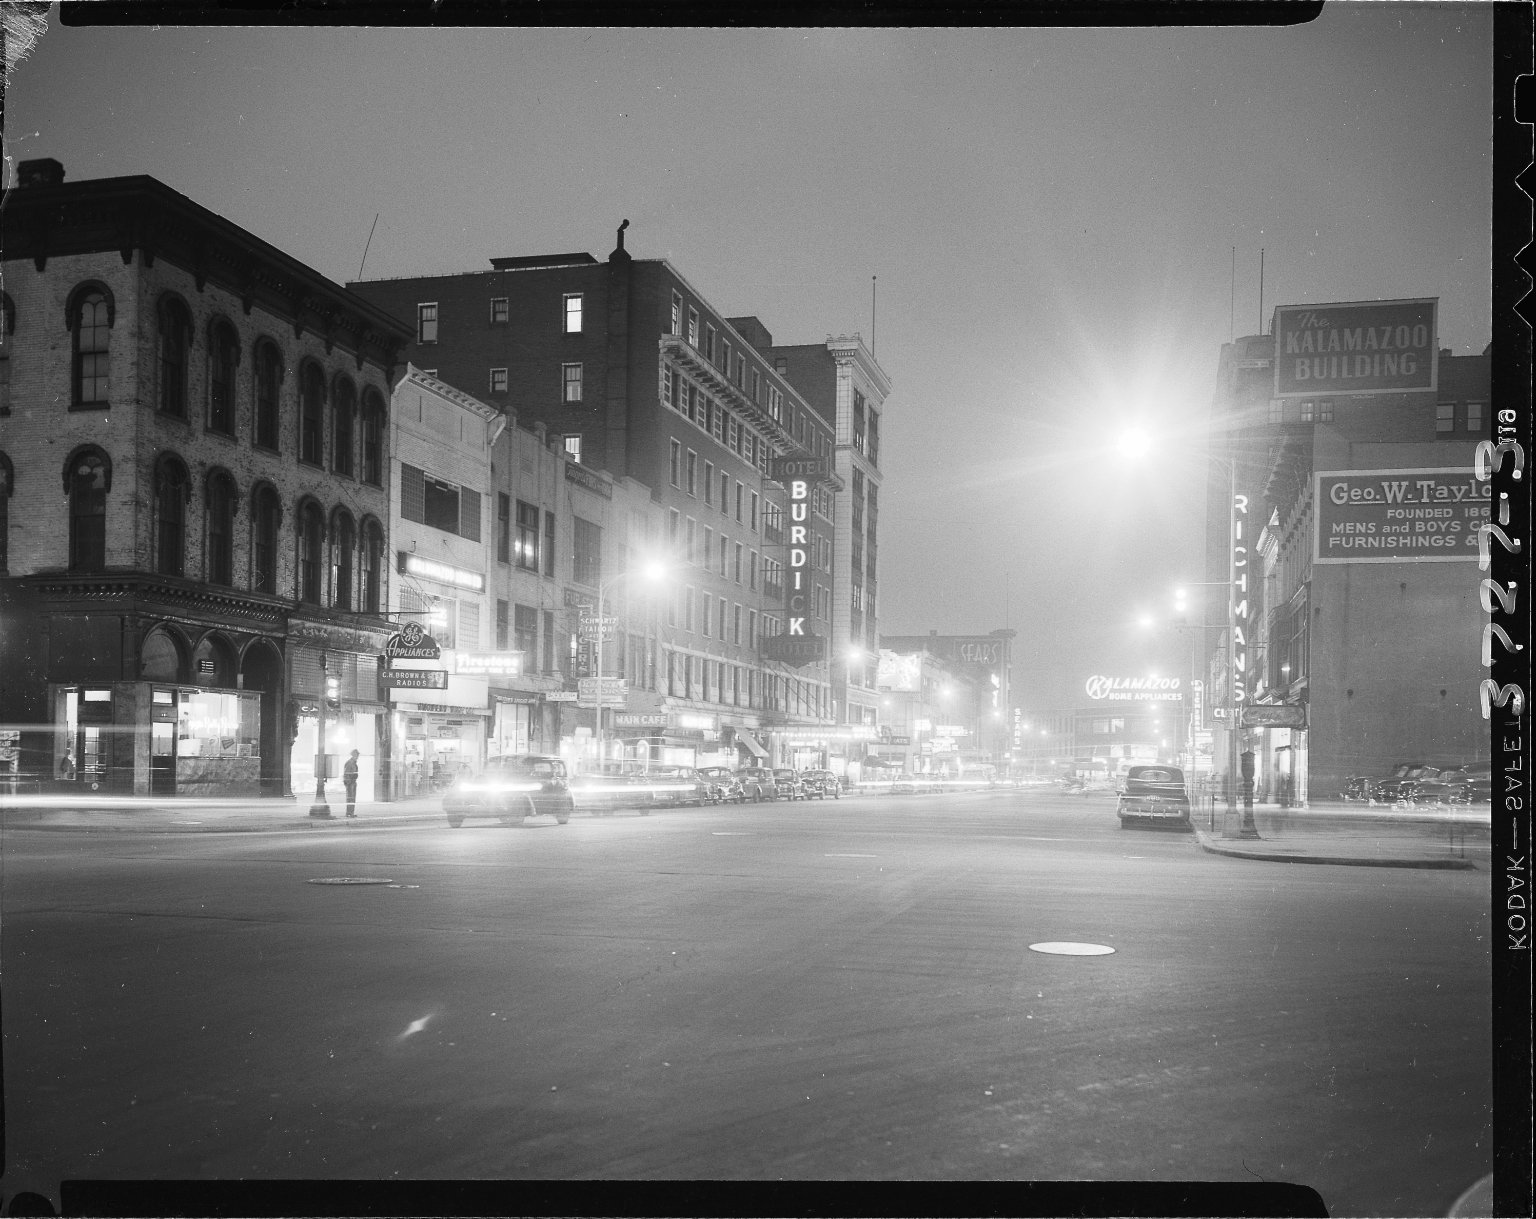 Michigan Avenue night scene, Kalamazoo